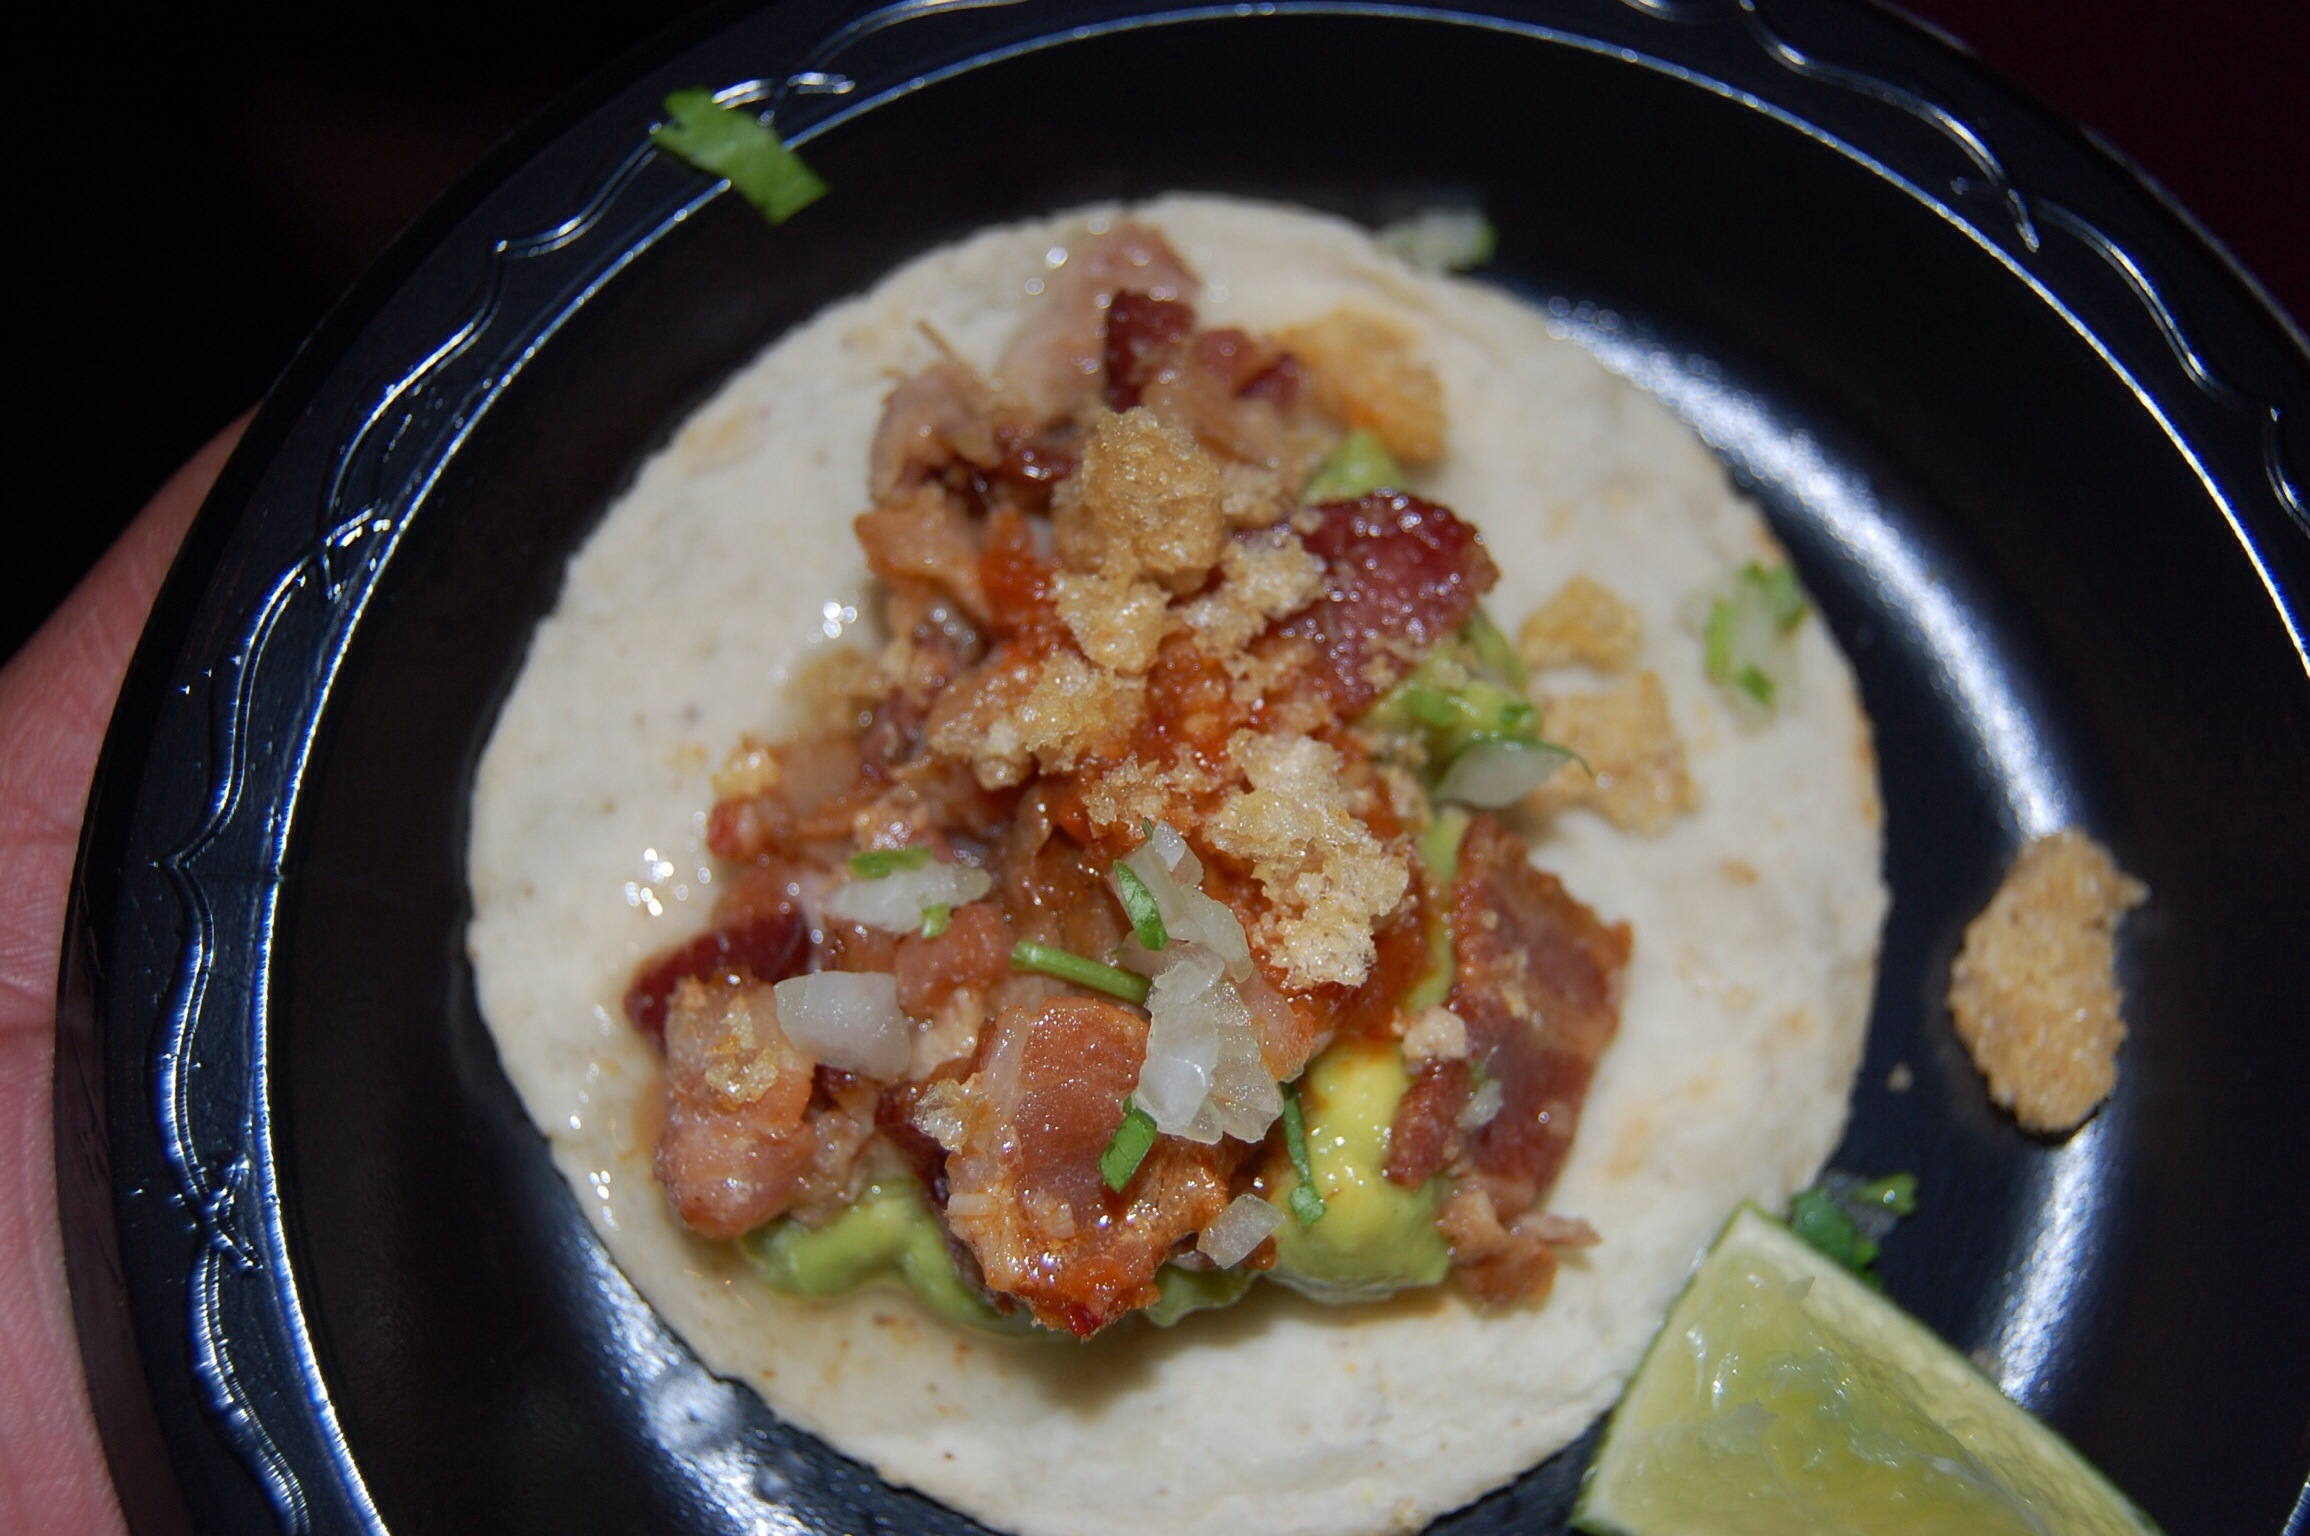 Taco Los Tres Cochintos from Loteria Grill at The Taste of Mexico